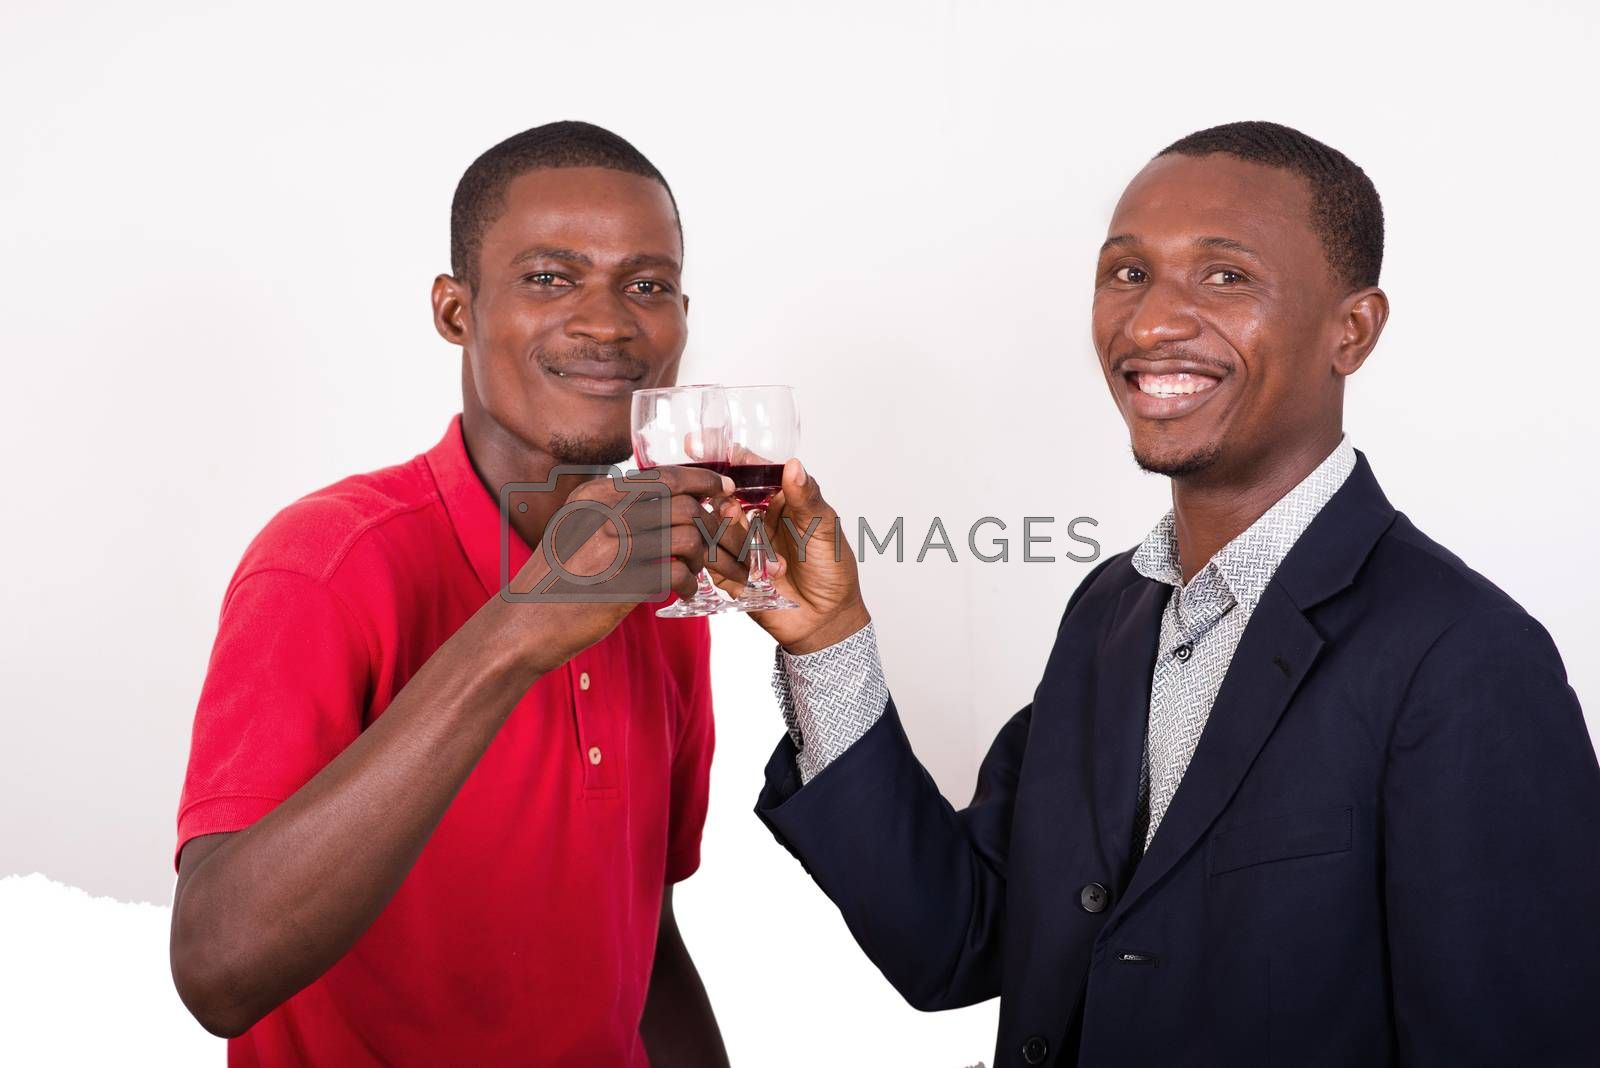 celebration, between two happy business people holding glasses of wine and toastcelebration, between two happy business people holding glasses of wine and toast